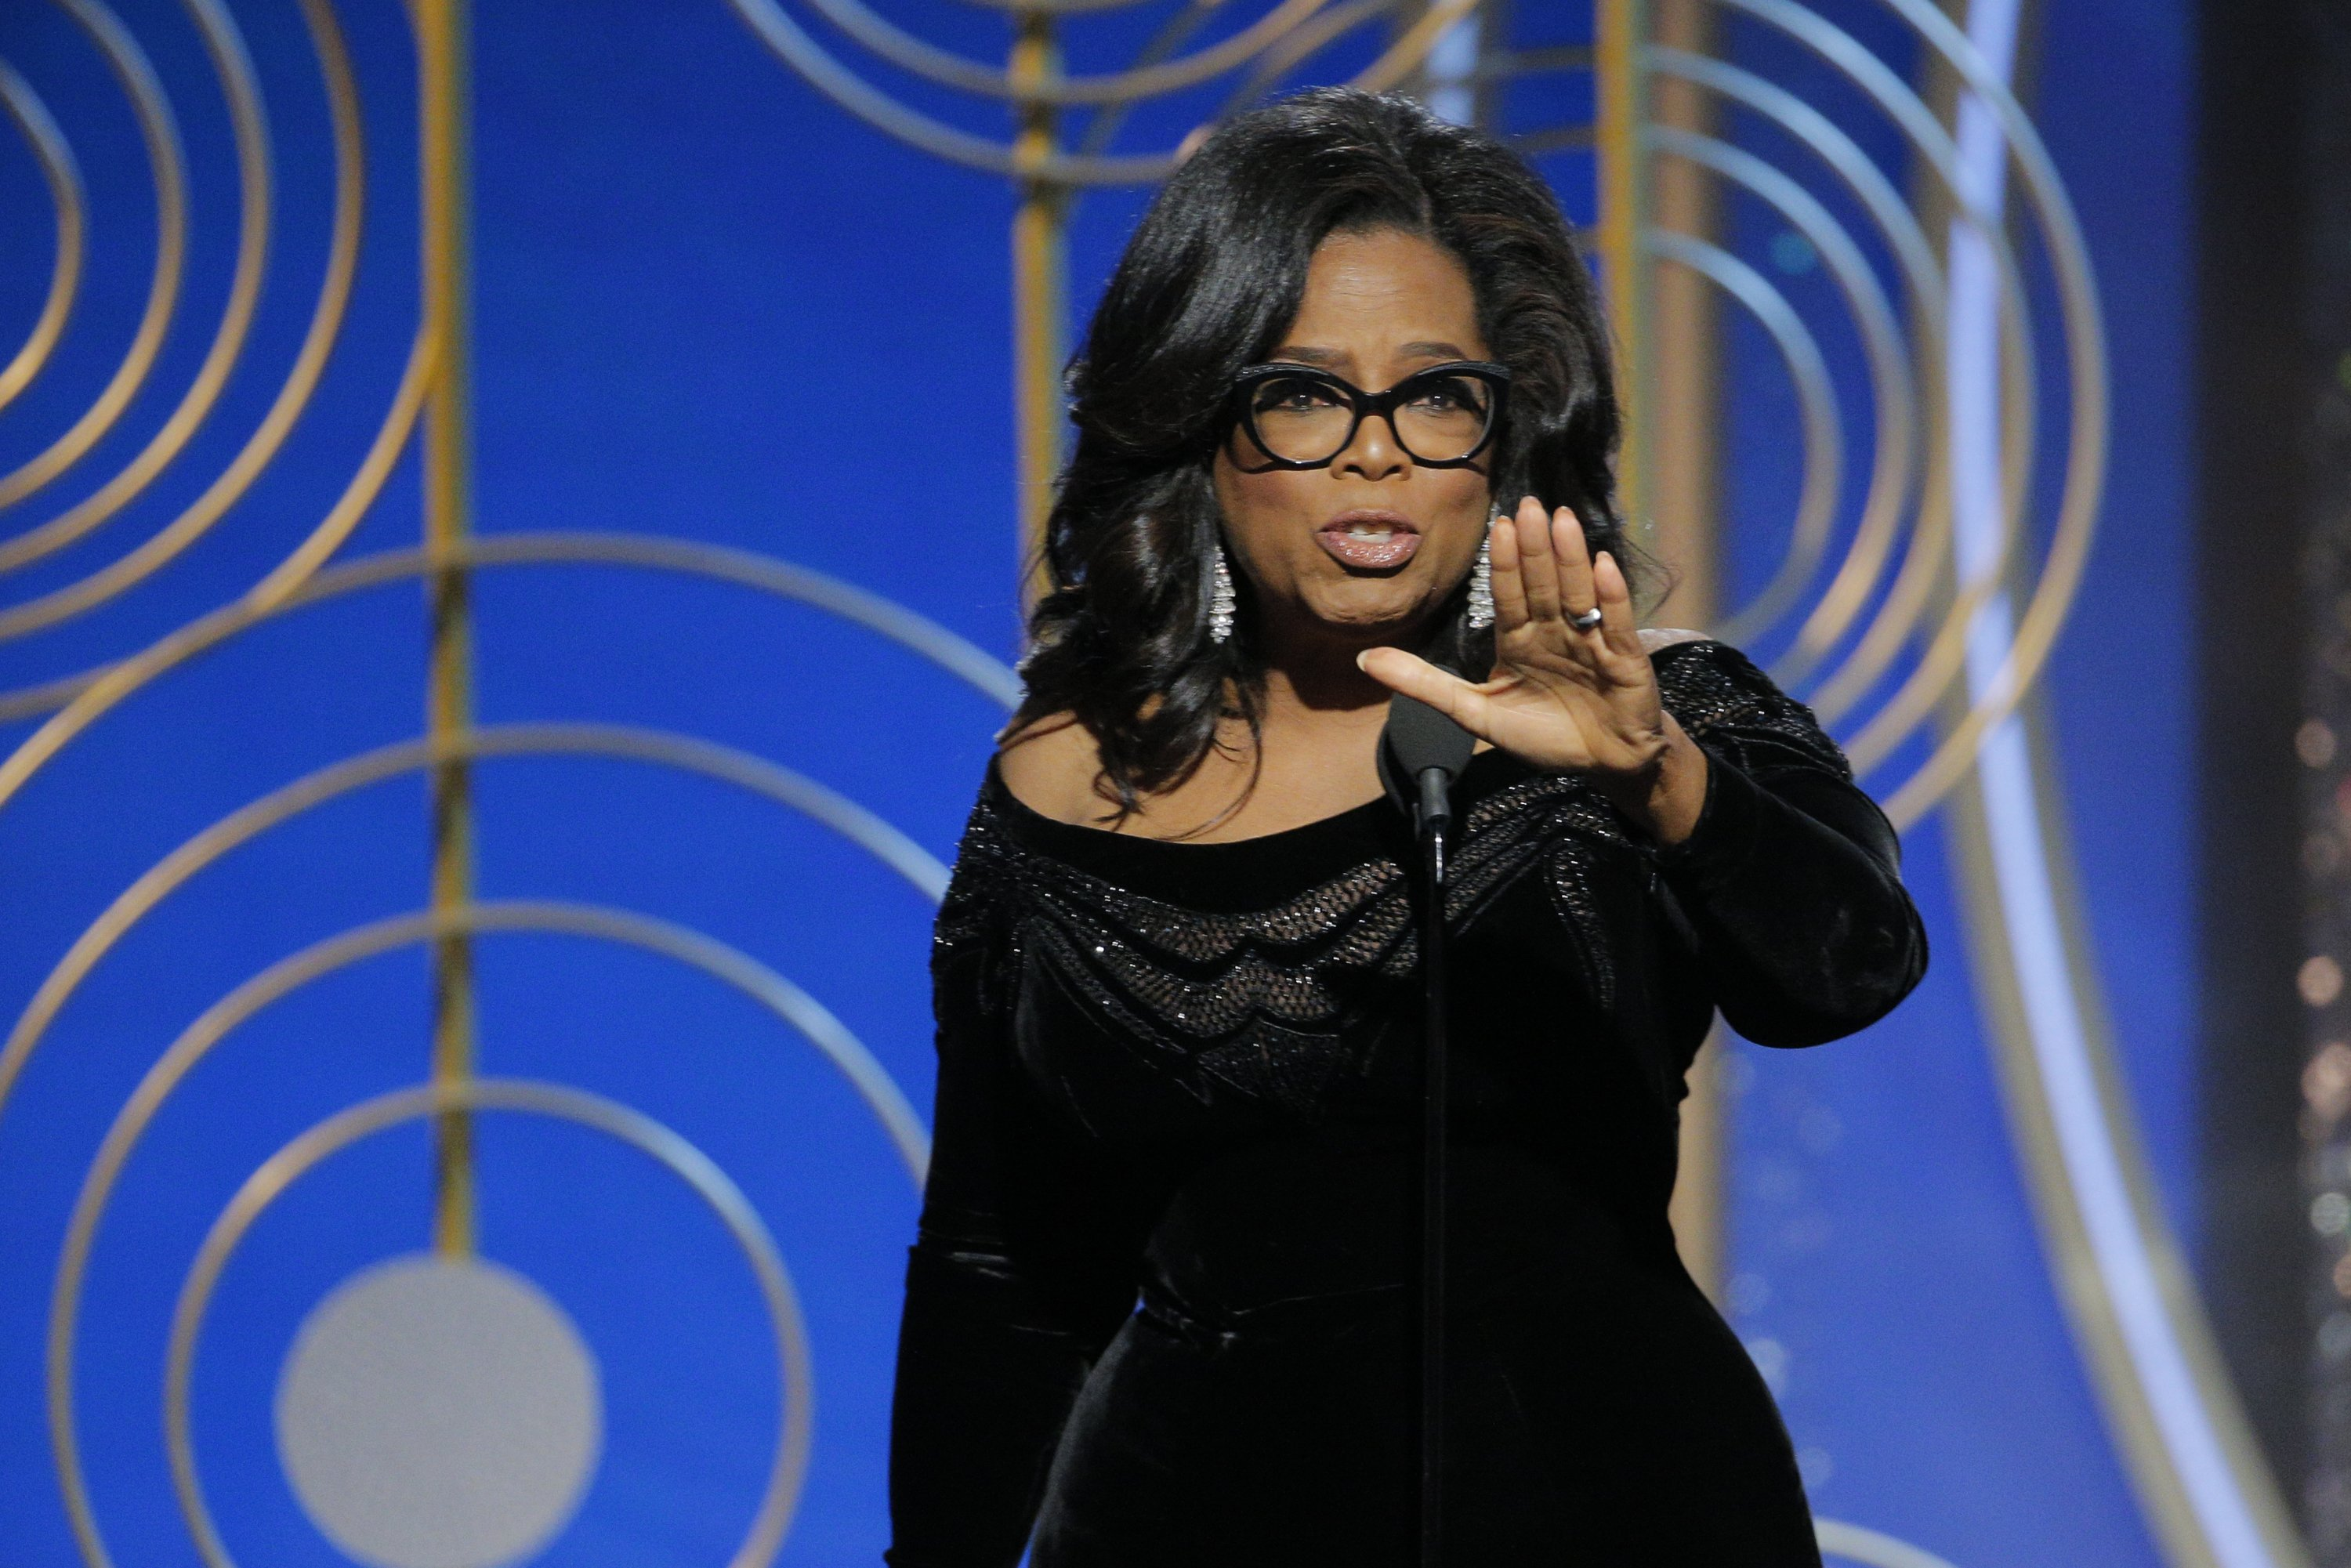 Oprah Winfrey at the Golden Globe Awards in Beverly Hills, California on Jan. 7, 2018 | Photo: Getty Images